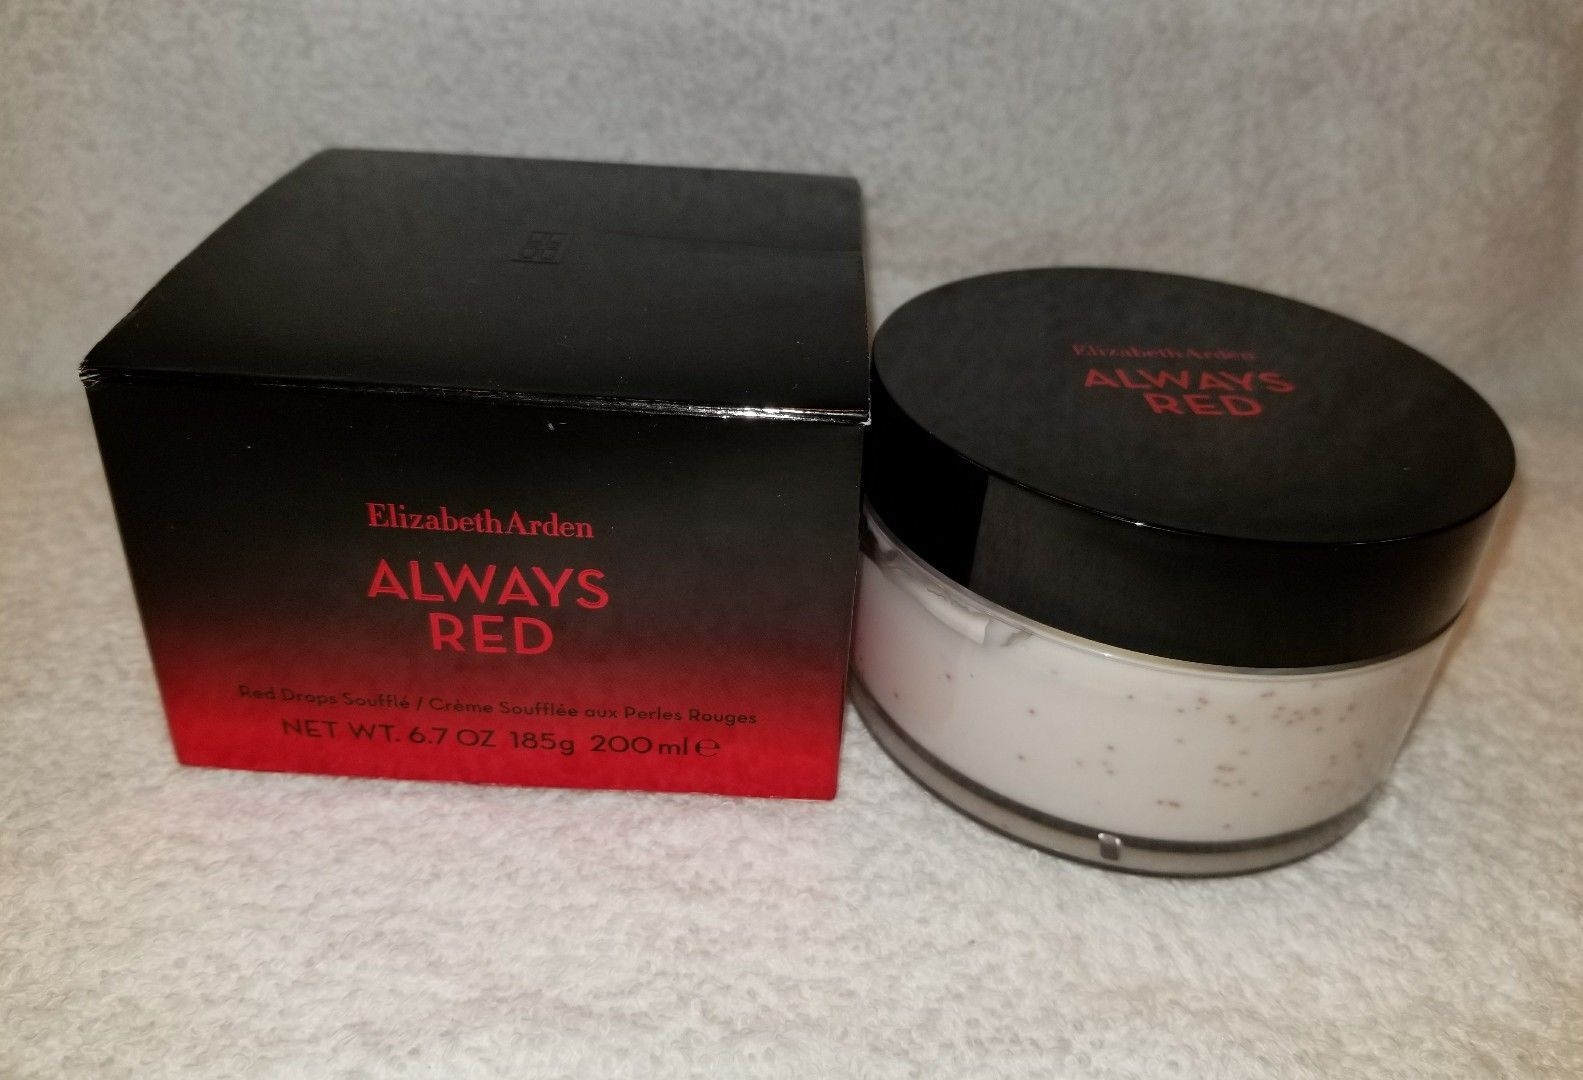 Primary image for Elizabeth Arden ALWAYS RED Red Drops Souffle 6.7 oz/200mL New Jar Boxed Unsealed